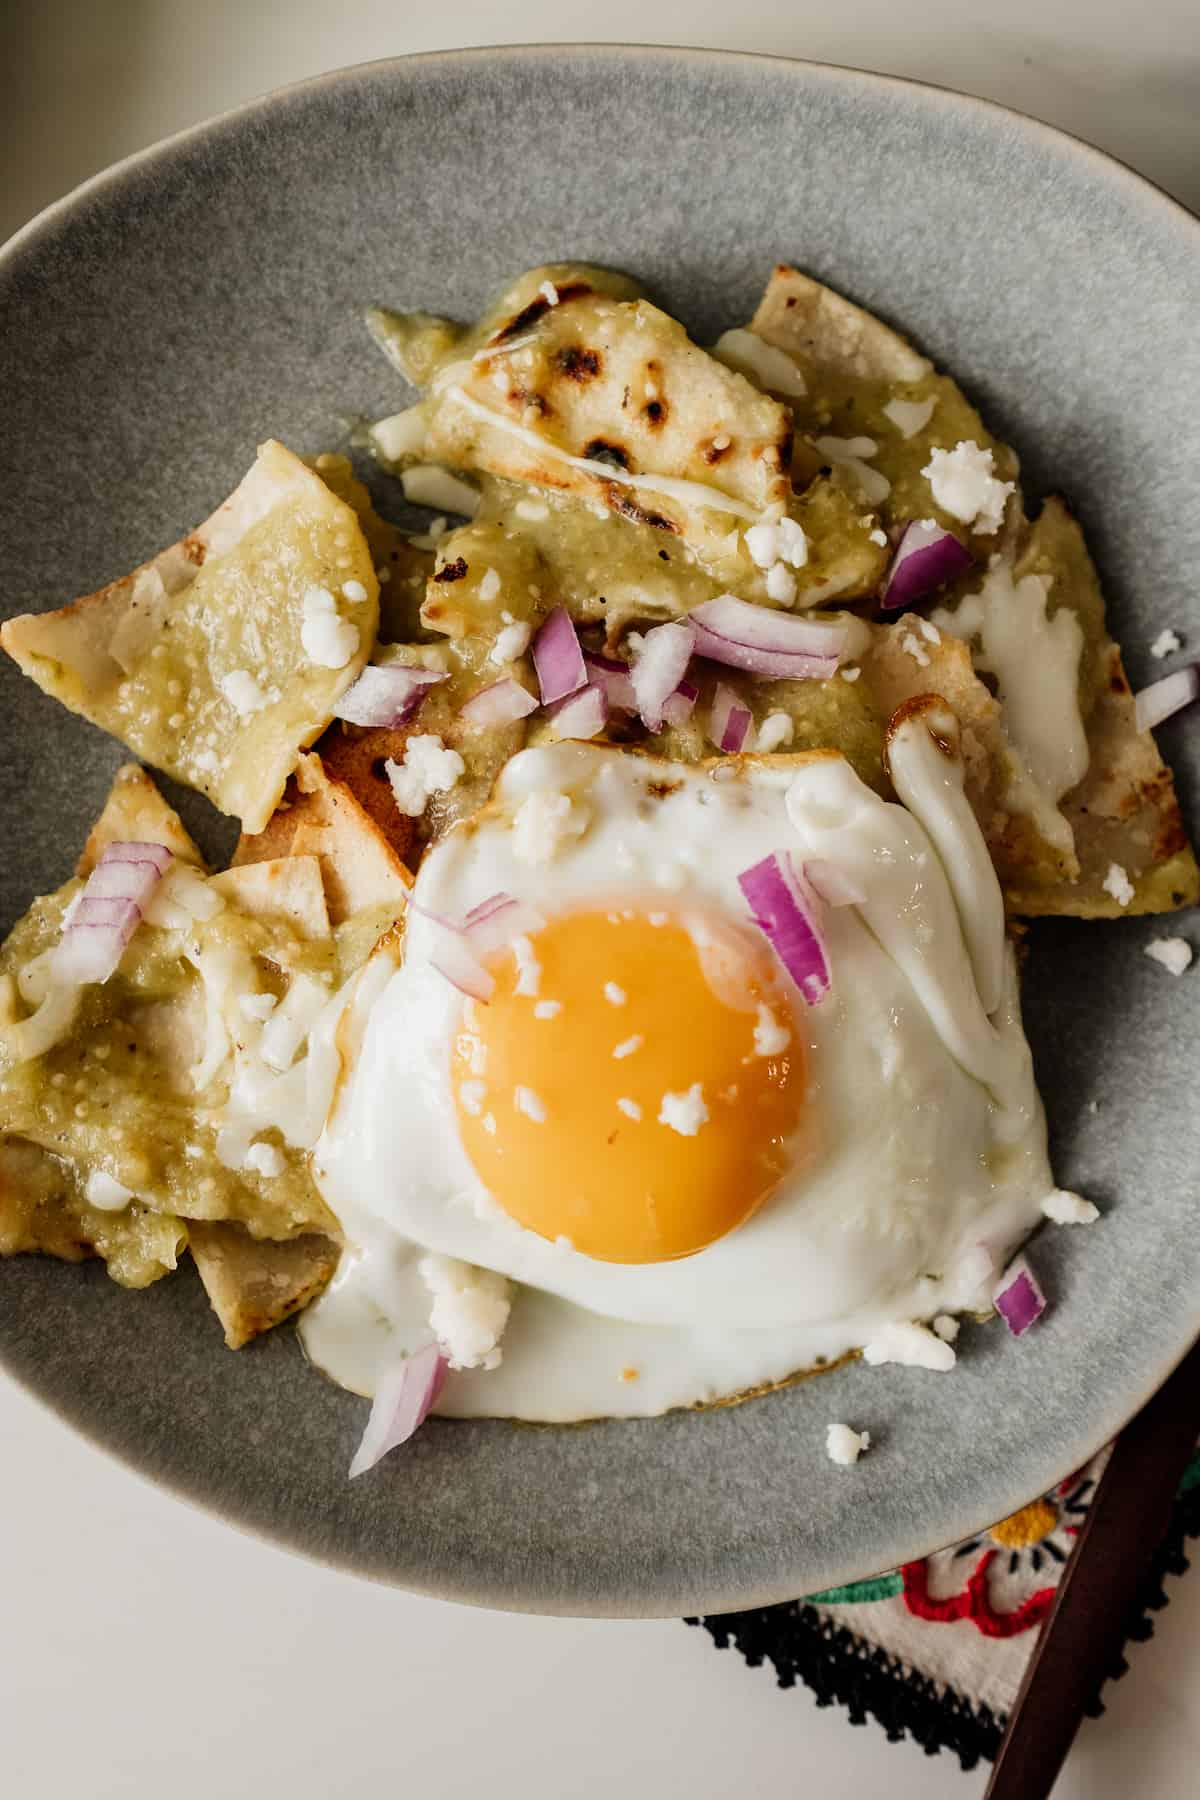 chilaquiles verde on a gray plate topped with a fried egg